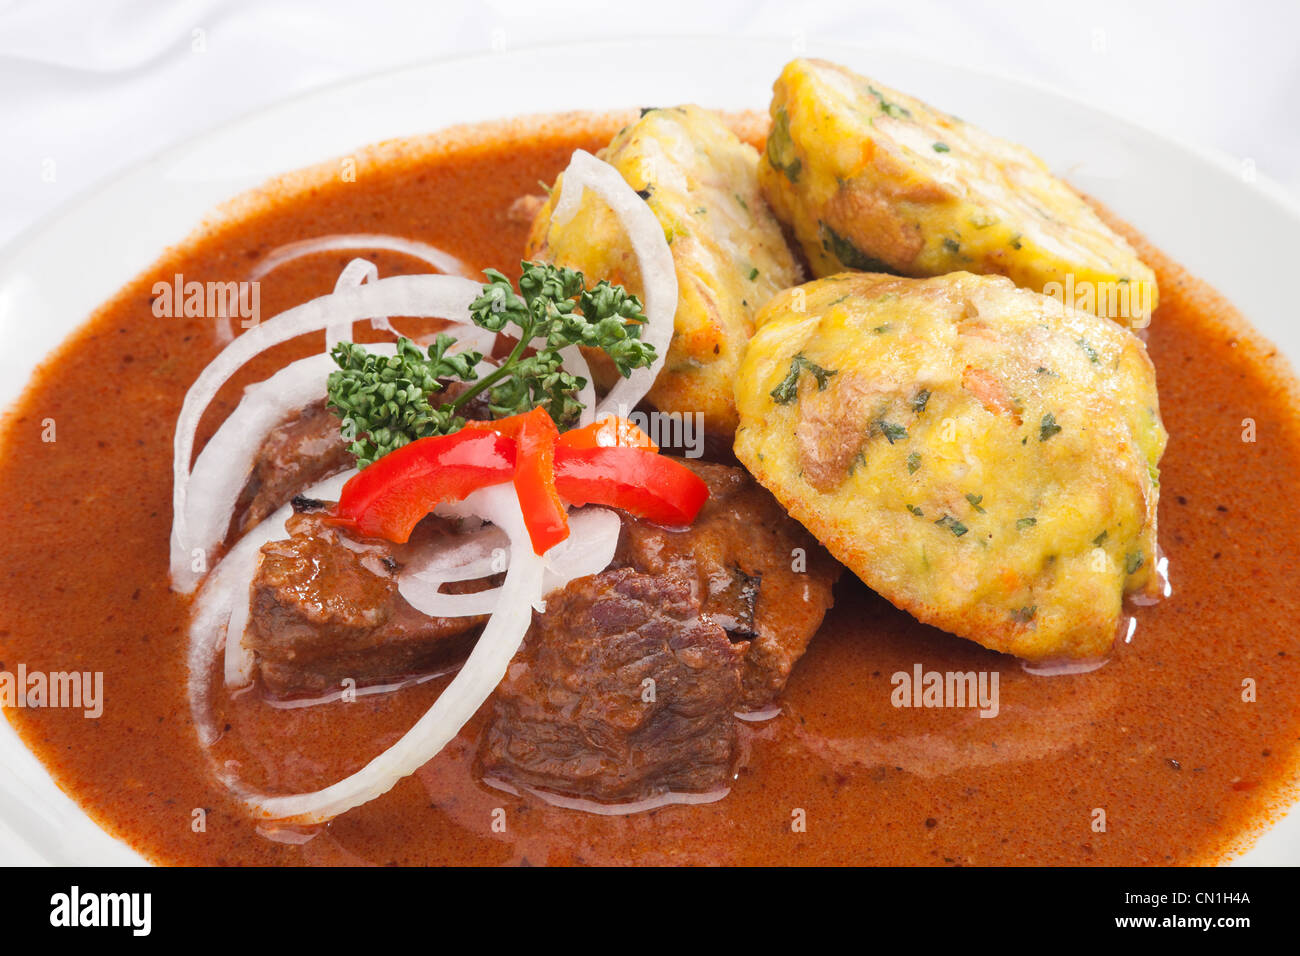 Hungarian Goulash W Dumplings And Vegetable Garnish Stock Photo Alamy